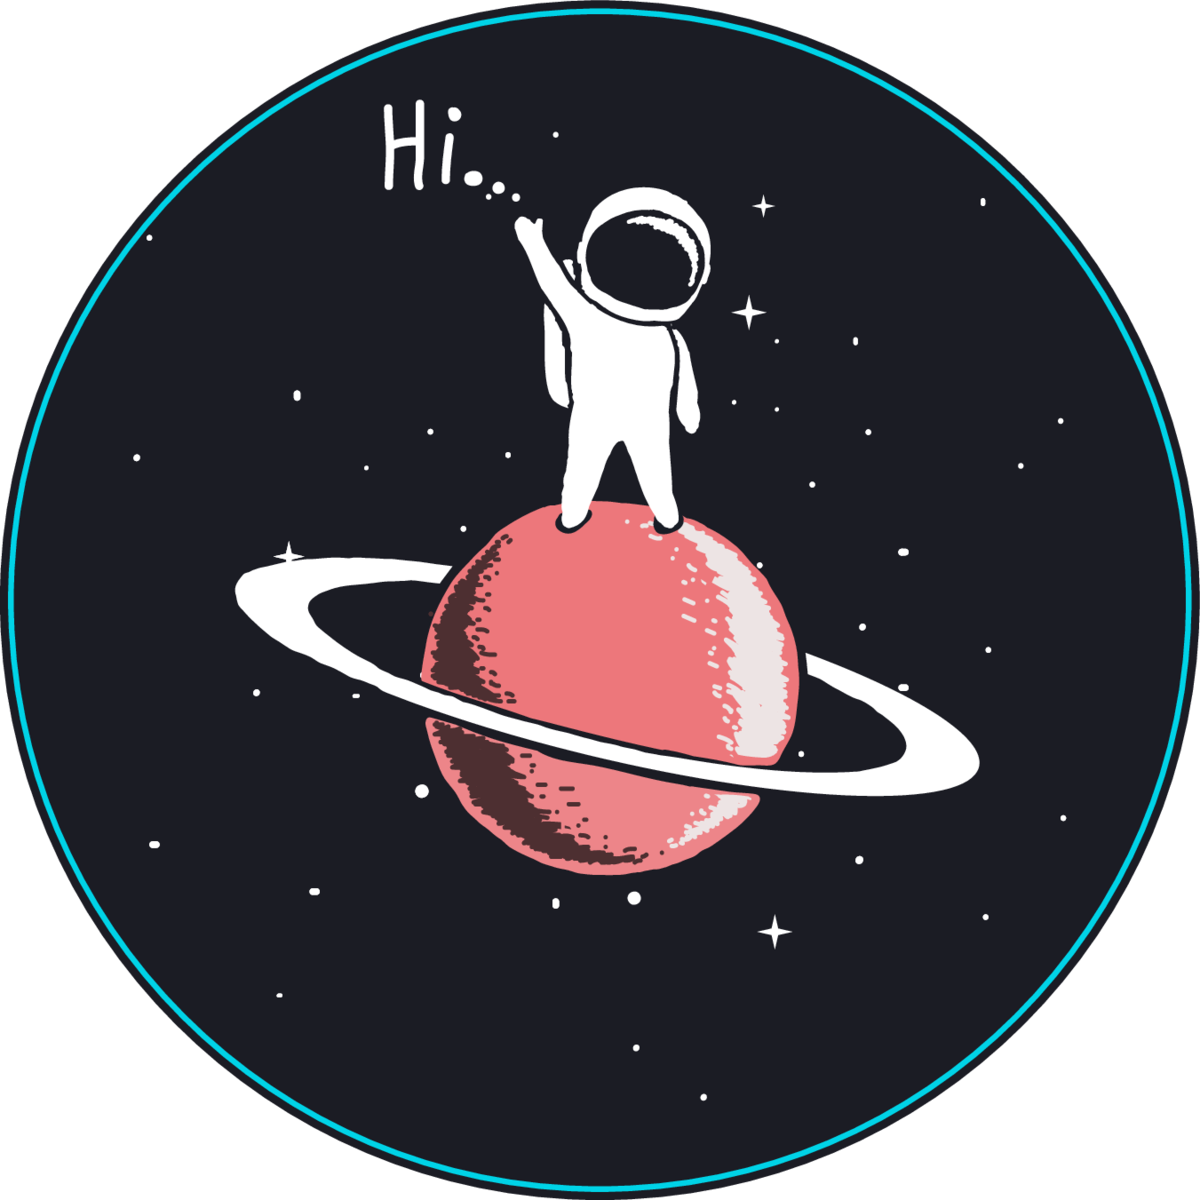 Baby Astronaut Says Hi From Saturn Sticker